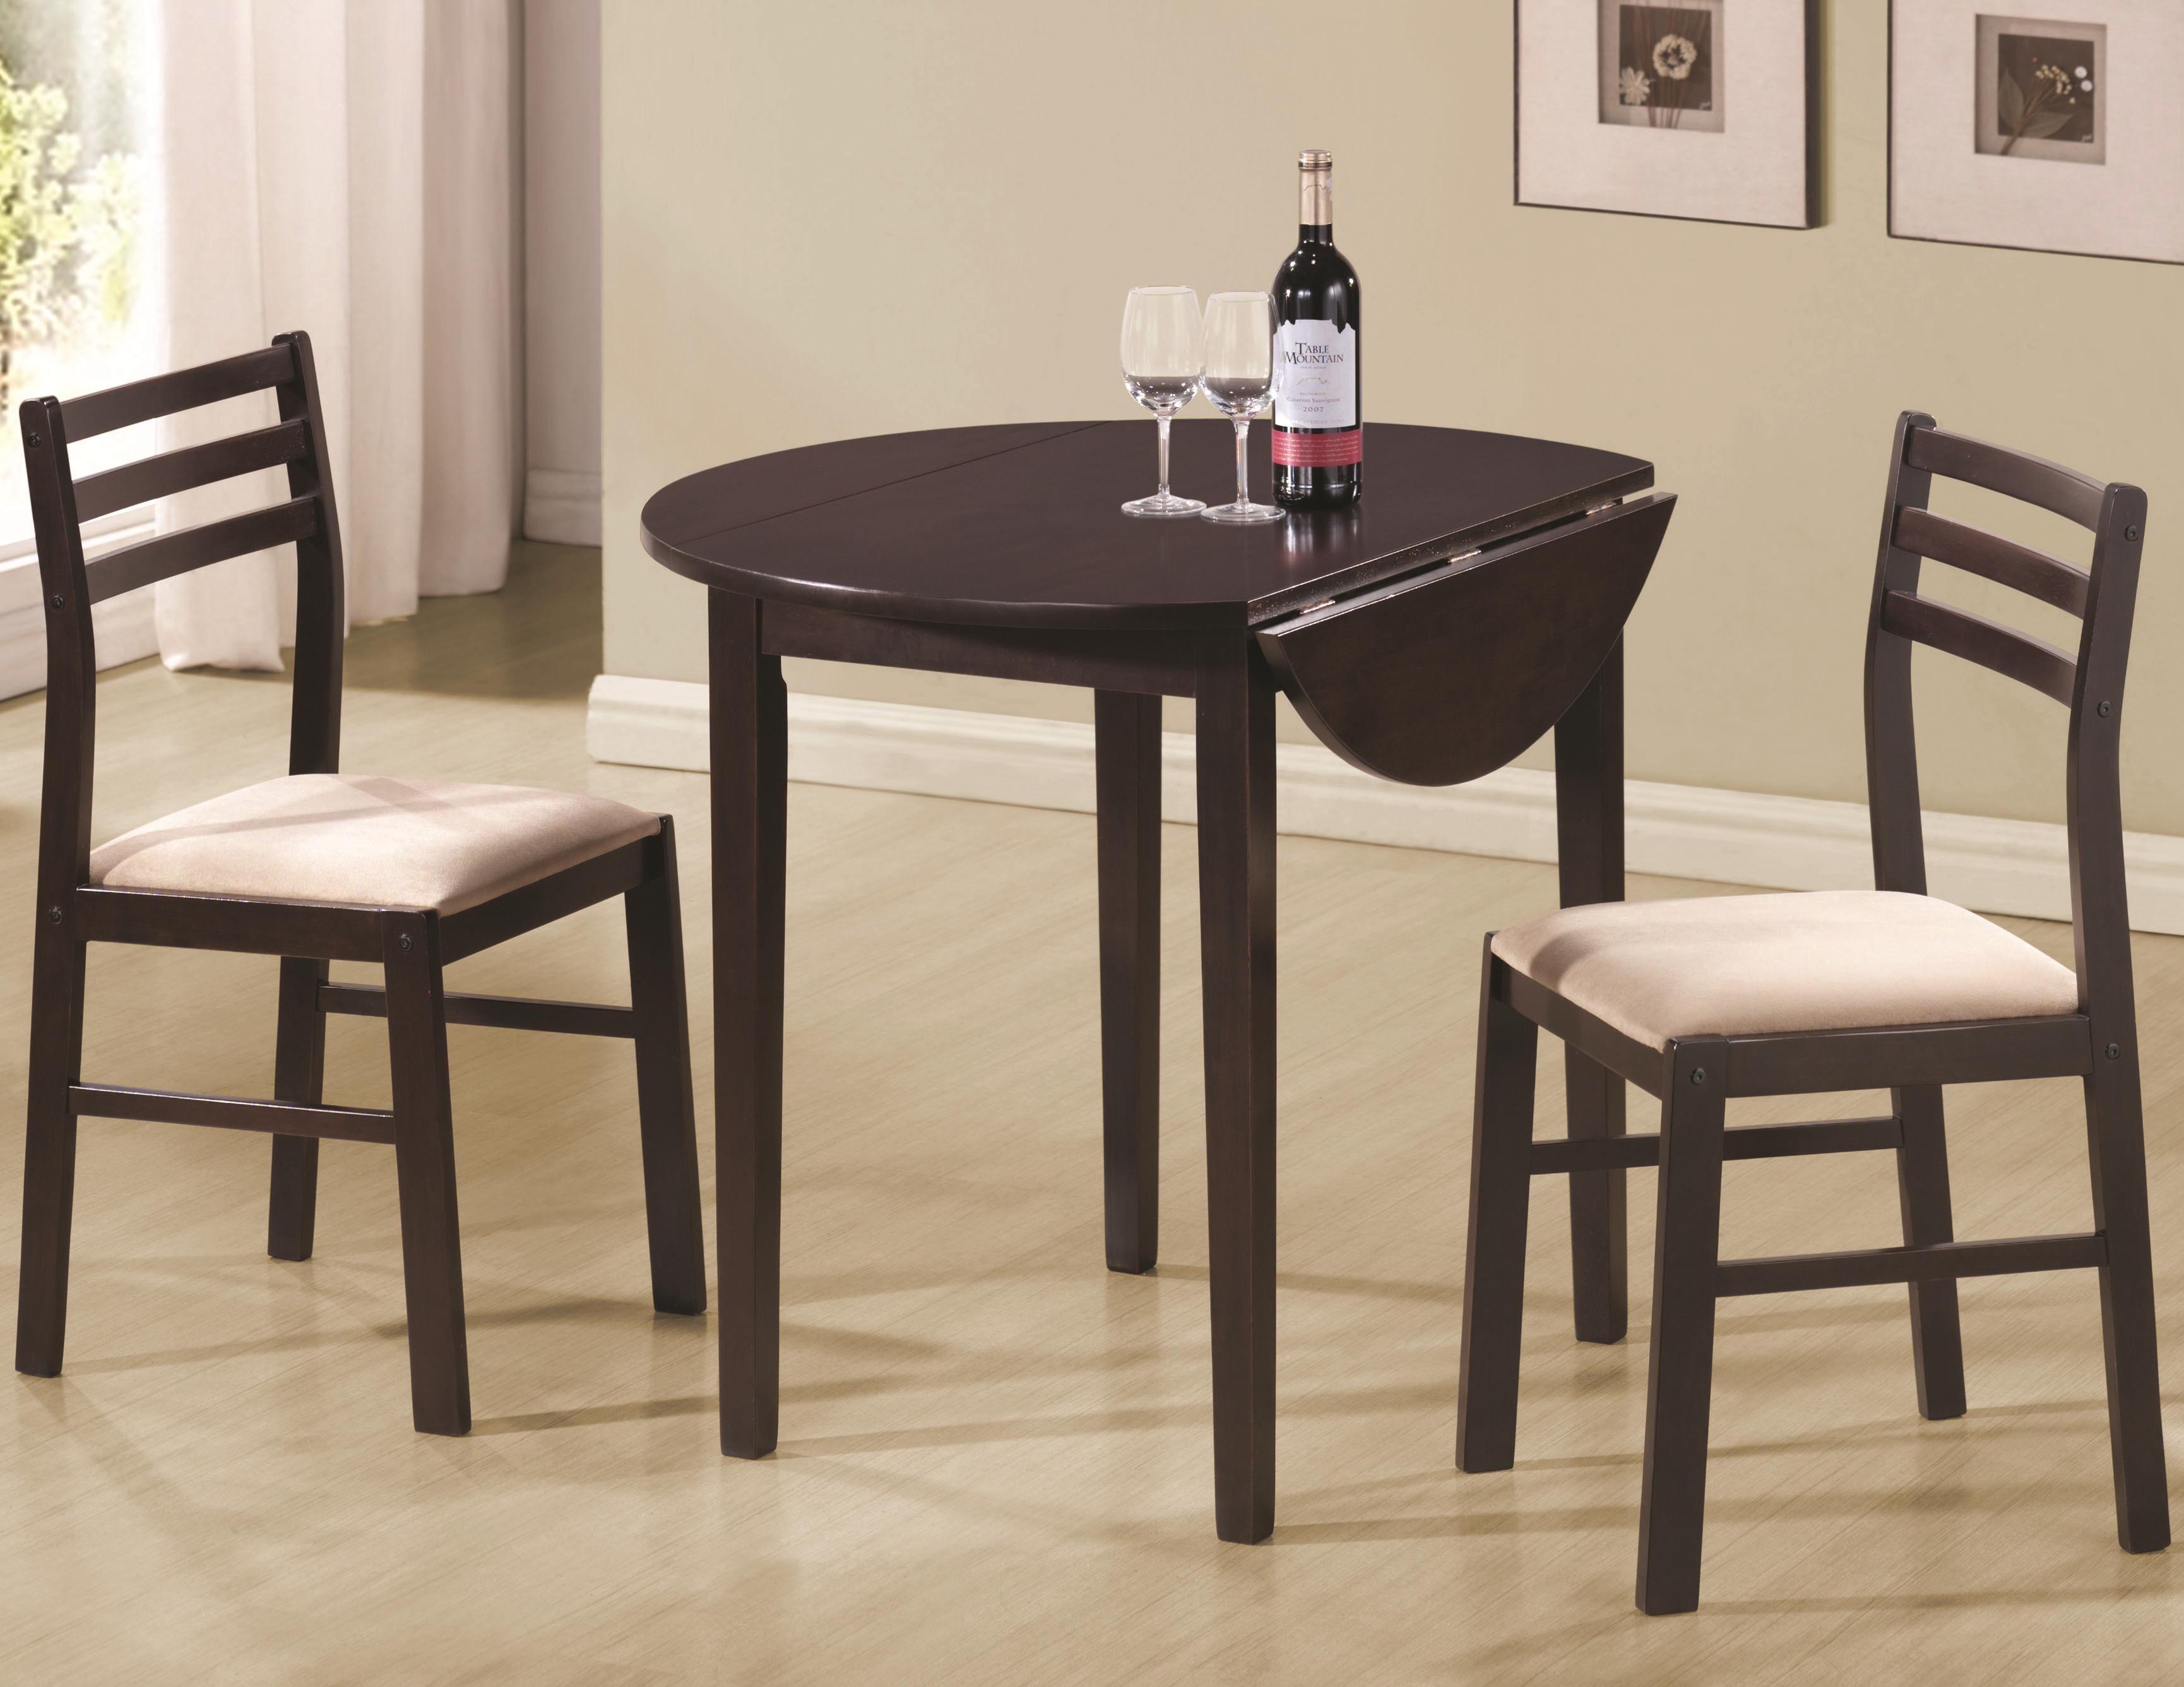 table chair set ikea markus casual 3 piece and by coaster wolf